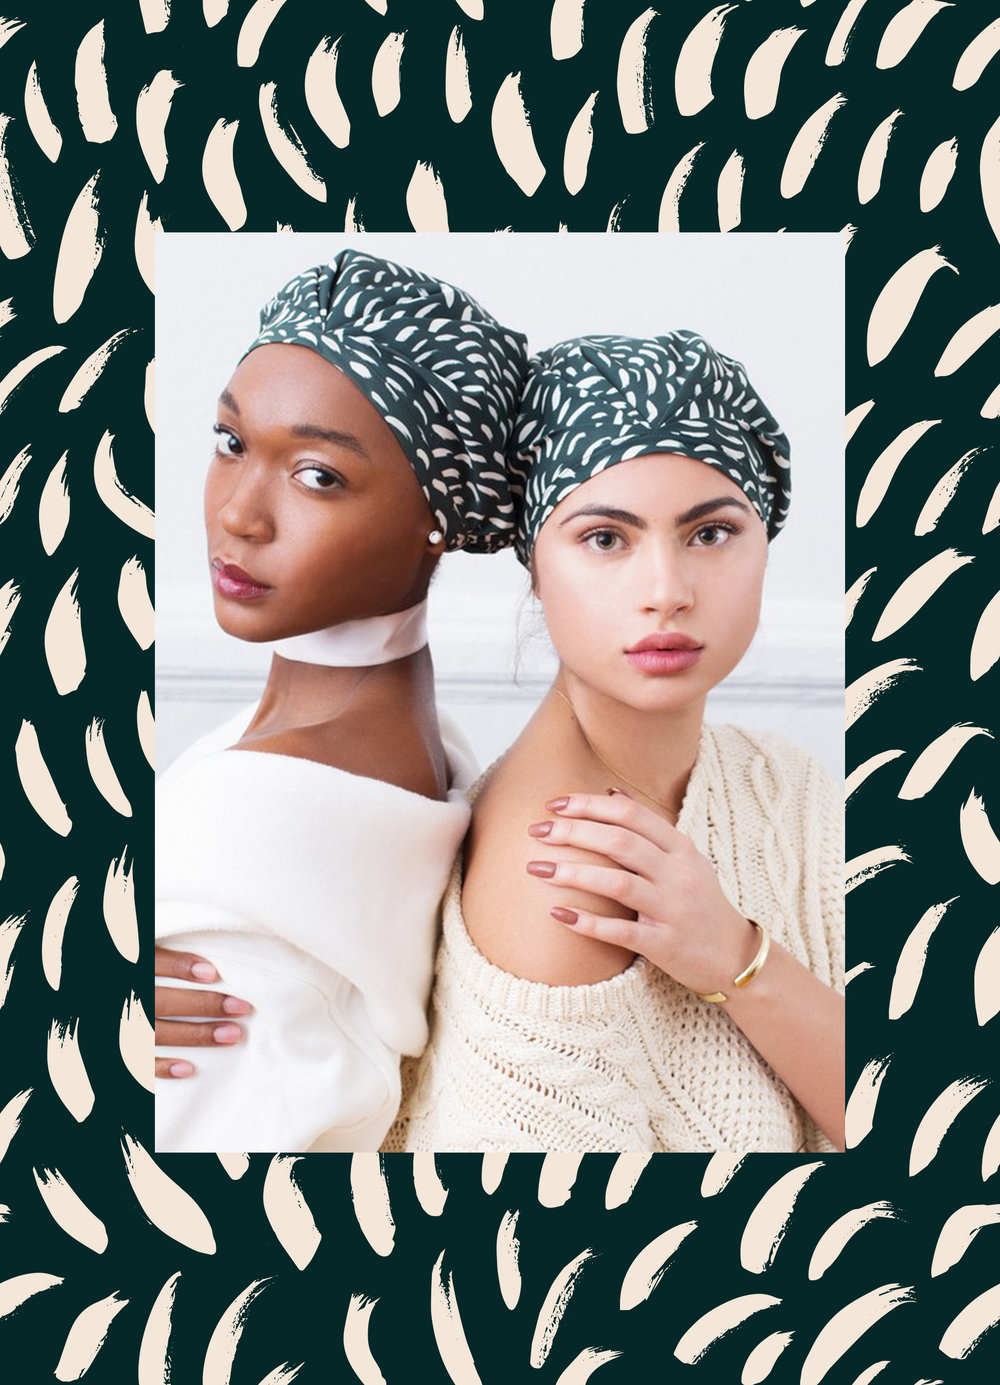 Vote for The Covet SHHHOWERCAP. It's a waterproof turban made of a nanotech fabric in a chic turban silhouette. T